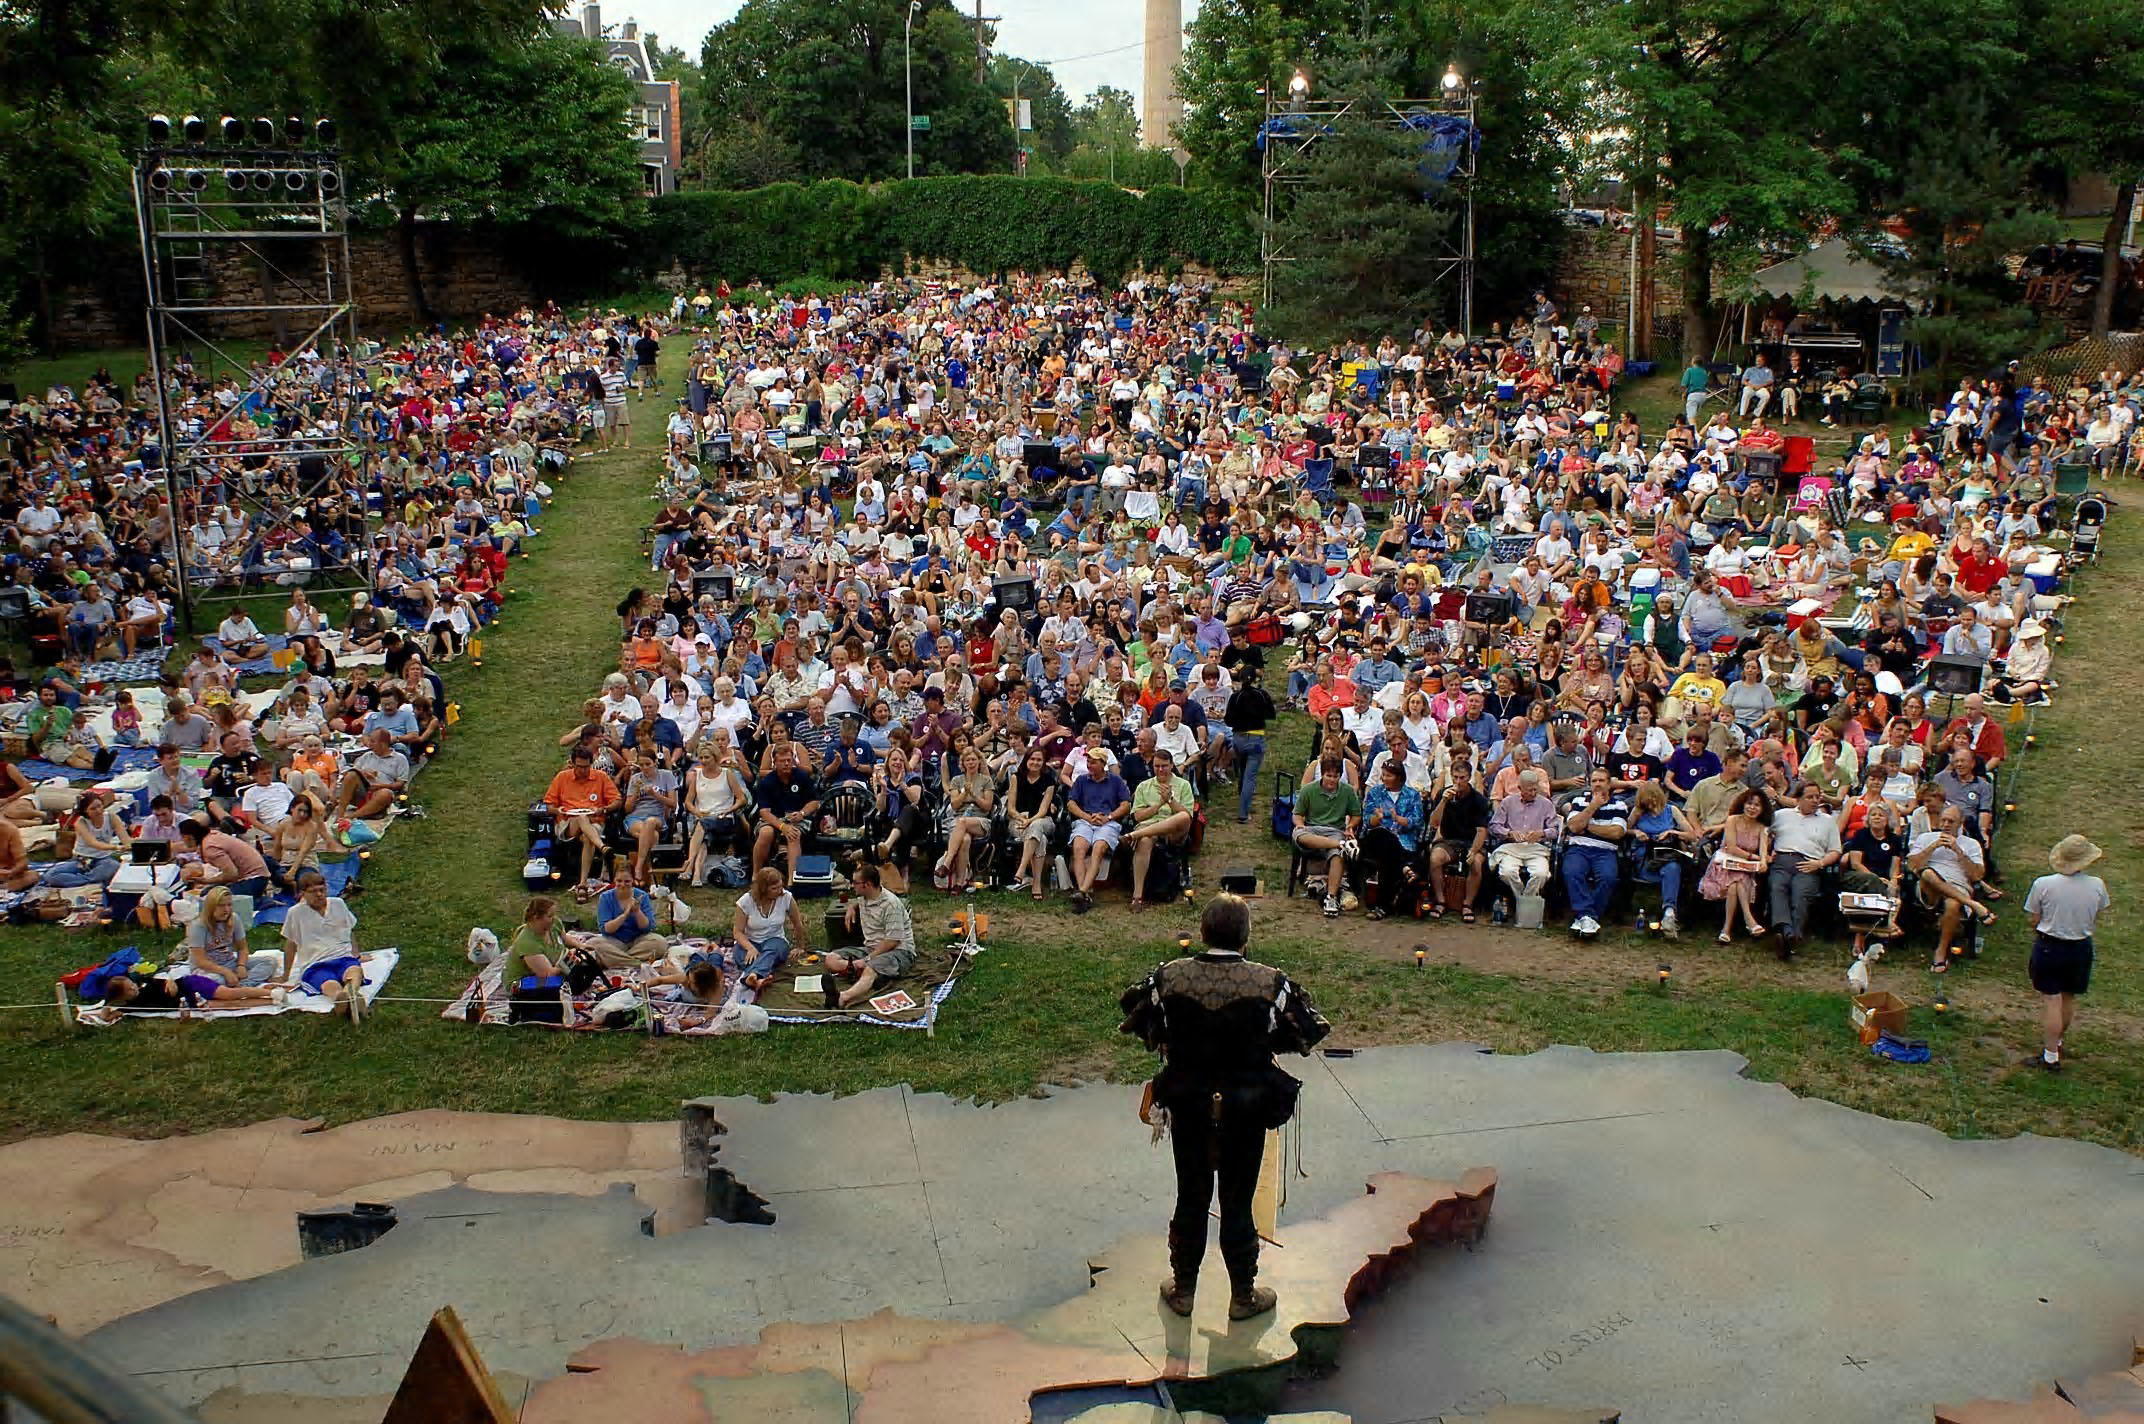 Heart of America Shakespeare Festival audience